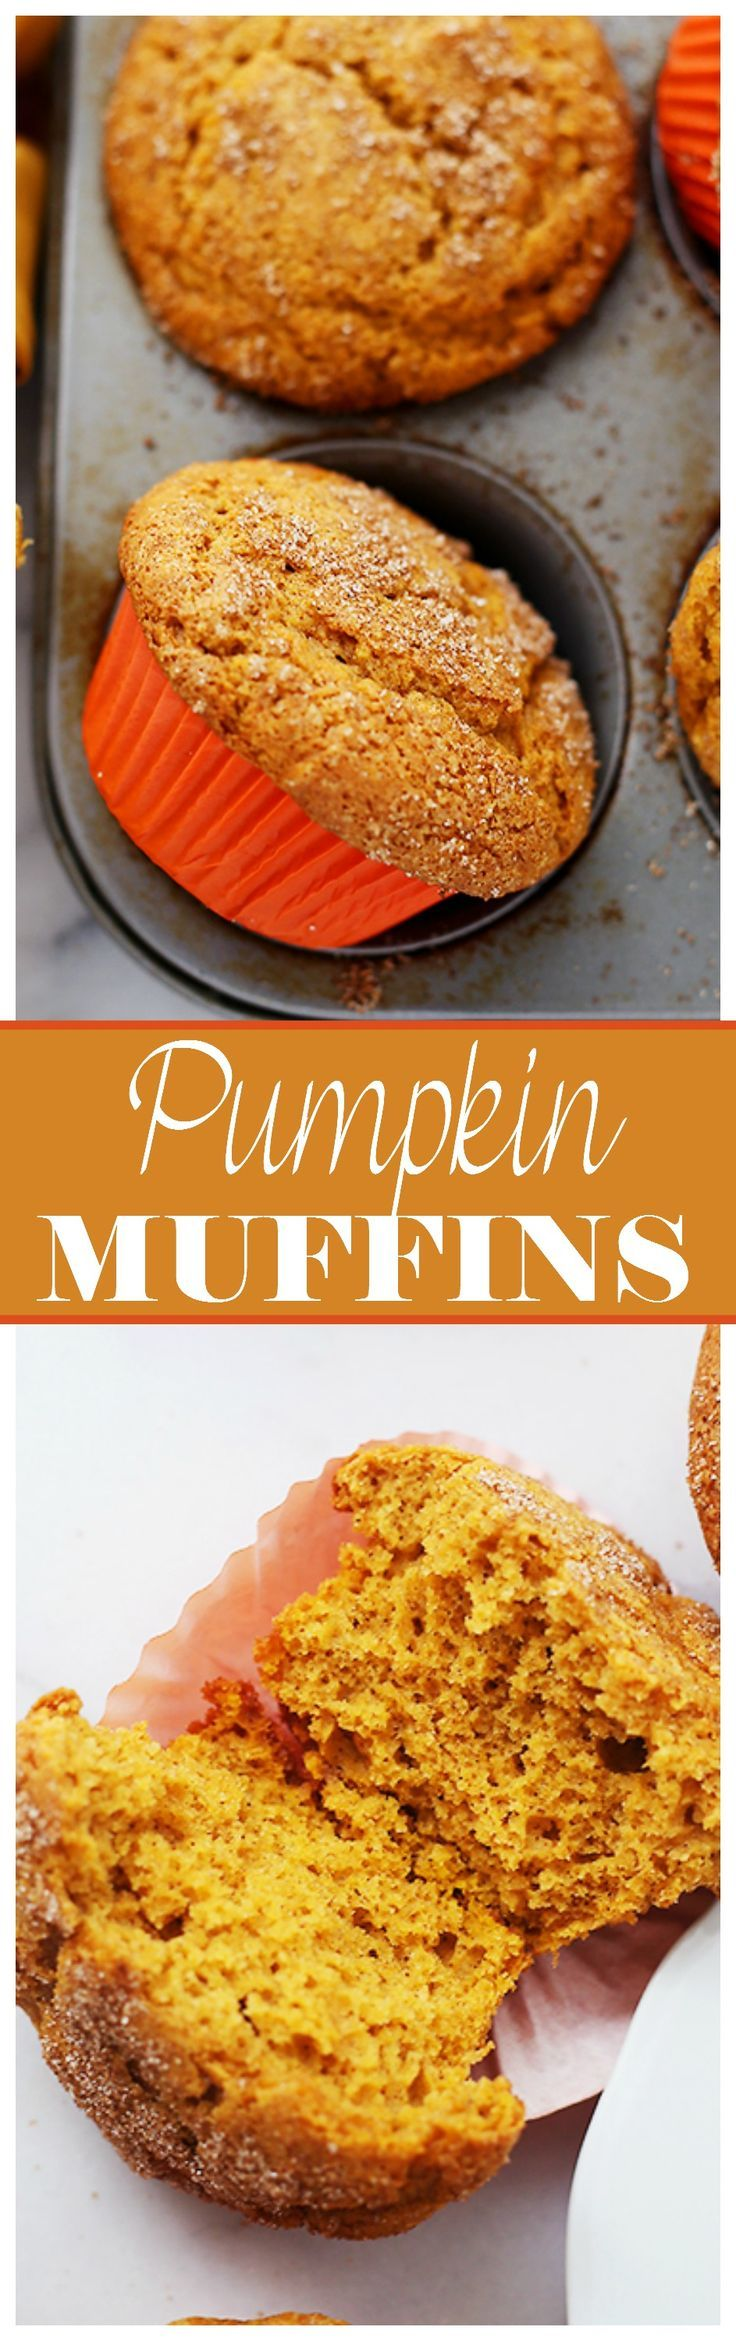 Pumpkin Muffins | Packed with pumpkin and topped with cinnamon-sugar, these Pumpkin Muffins are soft, fluffy, moist, and absolutely delicious!: